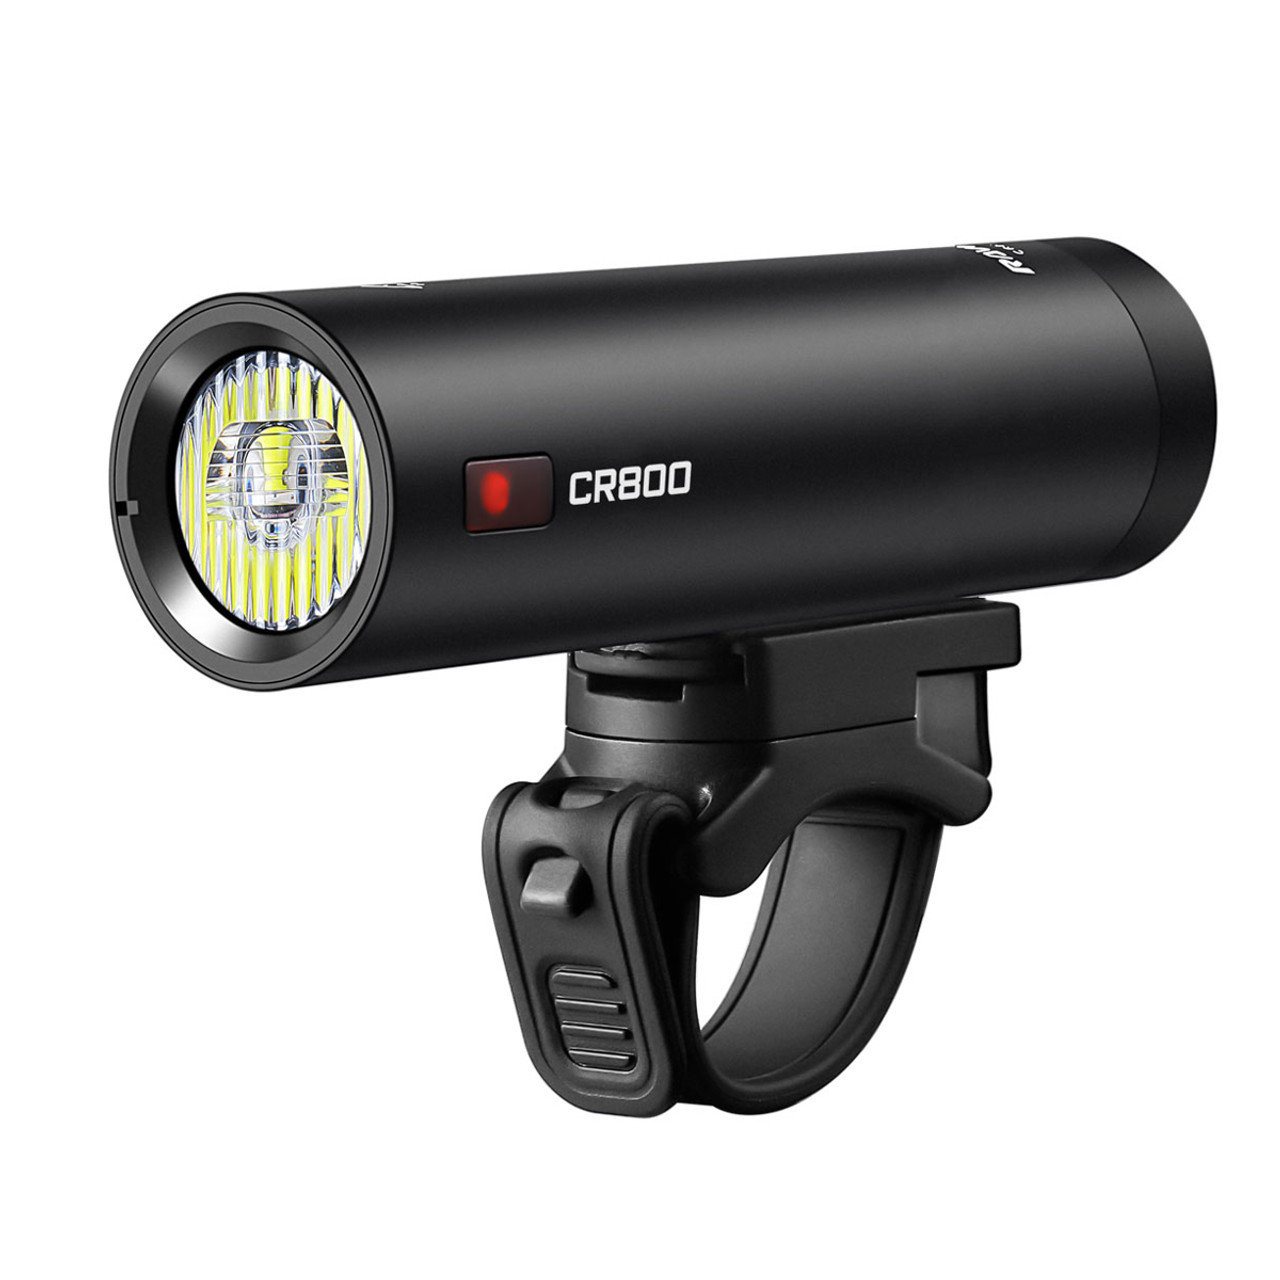 Ravemen CR800 USB Rechargeable T-Shape Anti-Glare Front Light with Remote in Matt/Gloss Black RRP £64.99